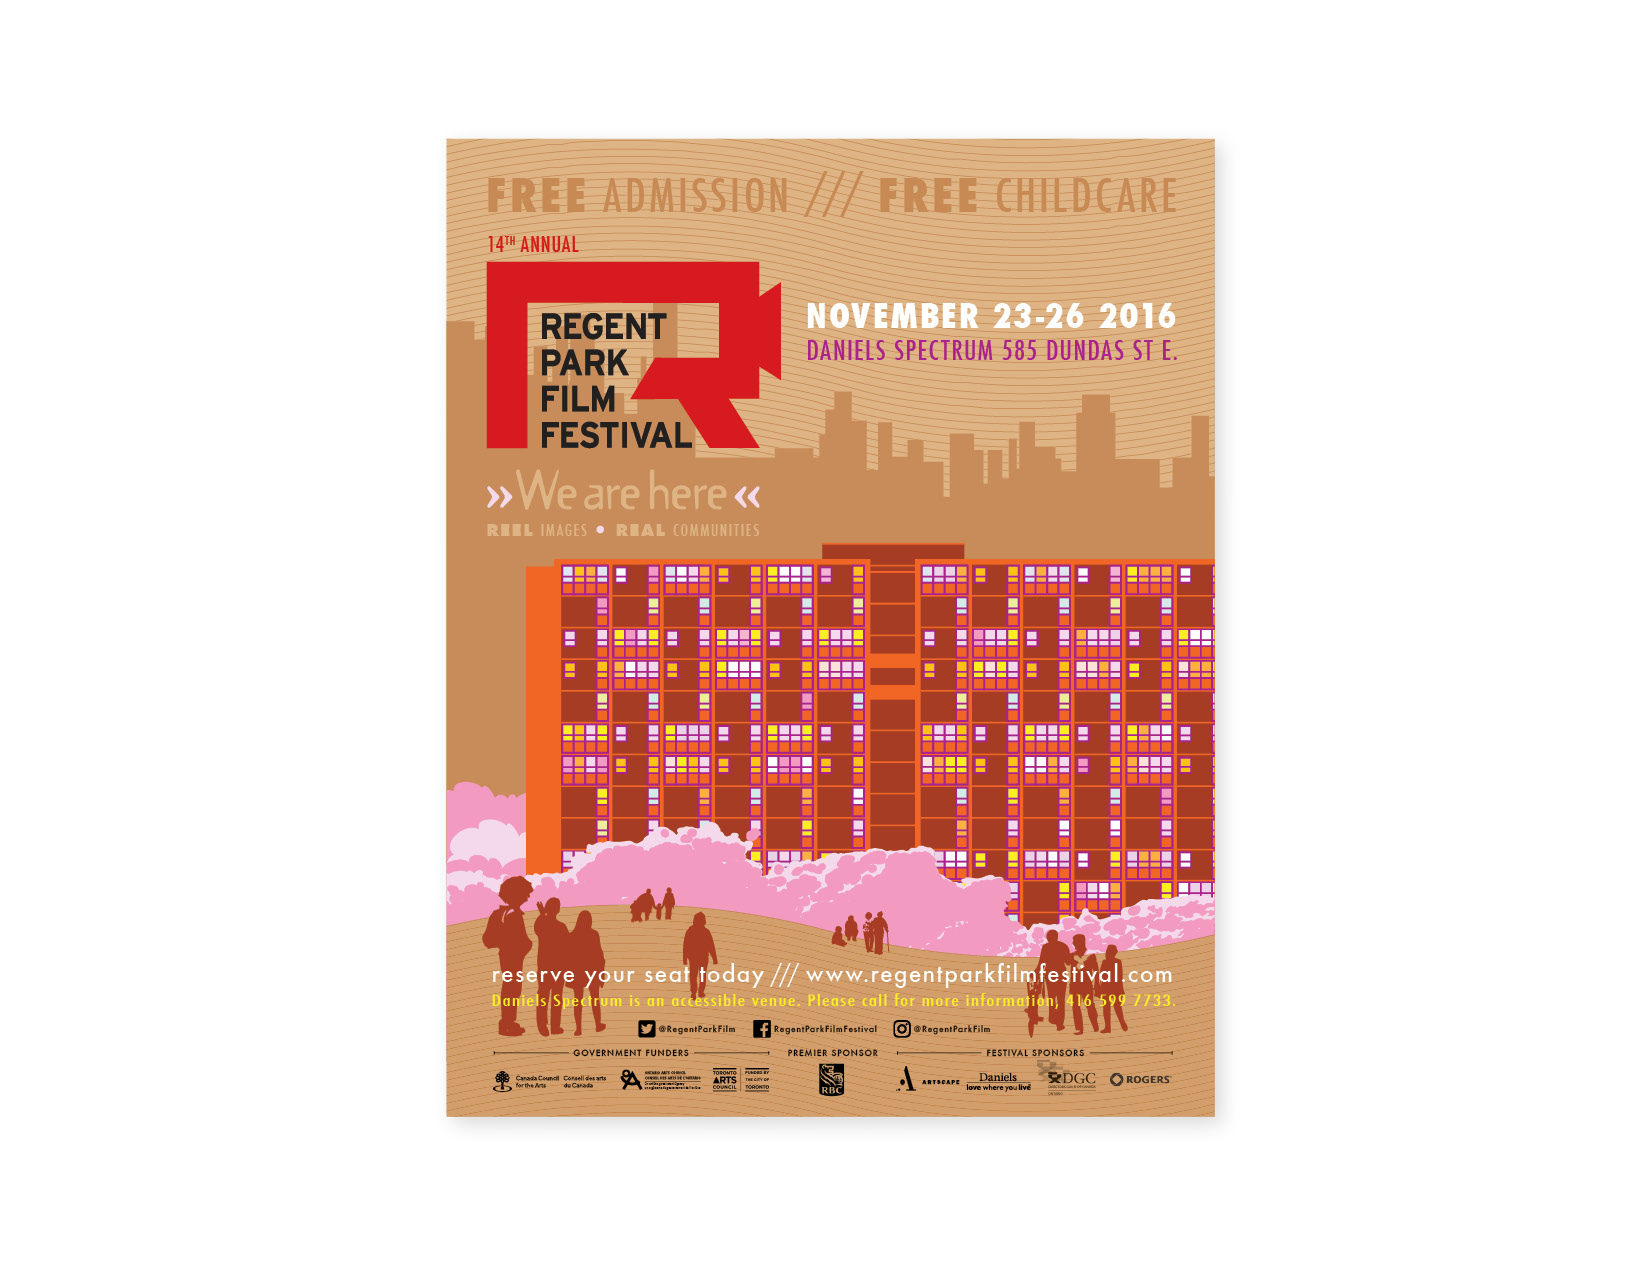 14th Annual Regent Park Film Festival poster